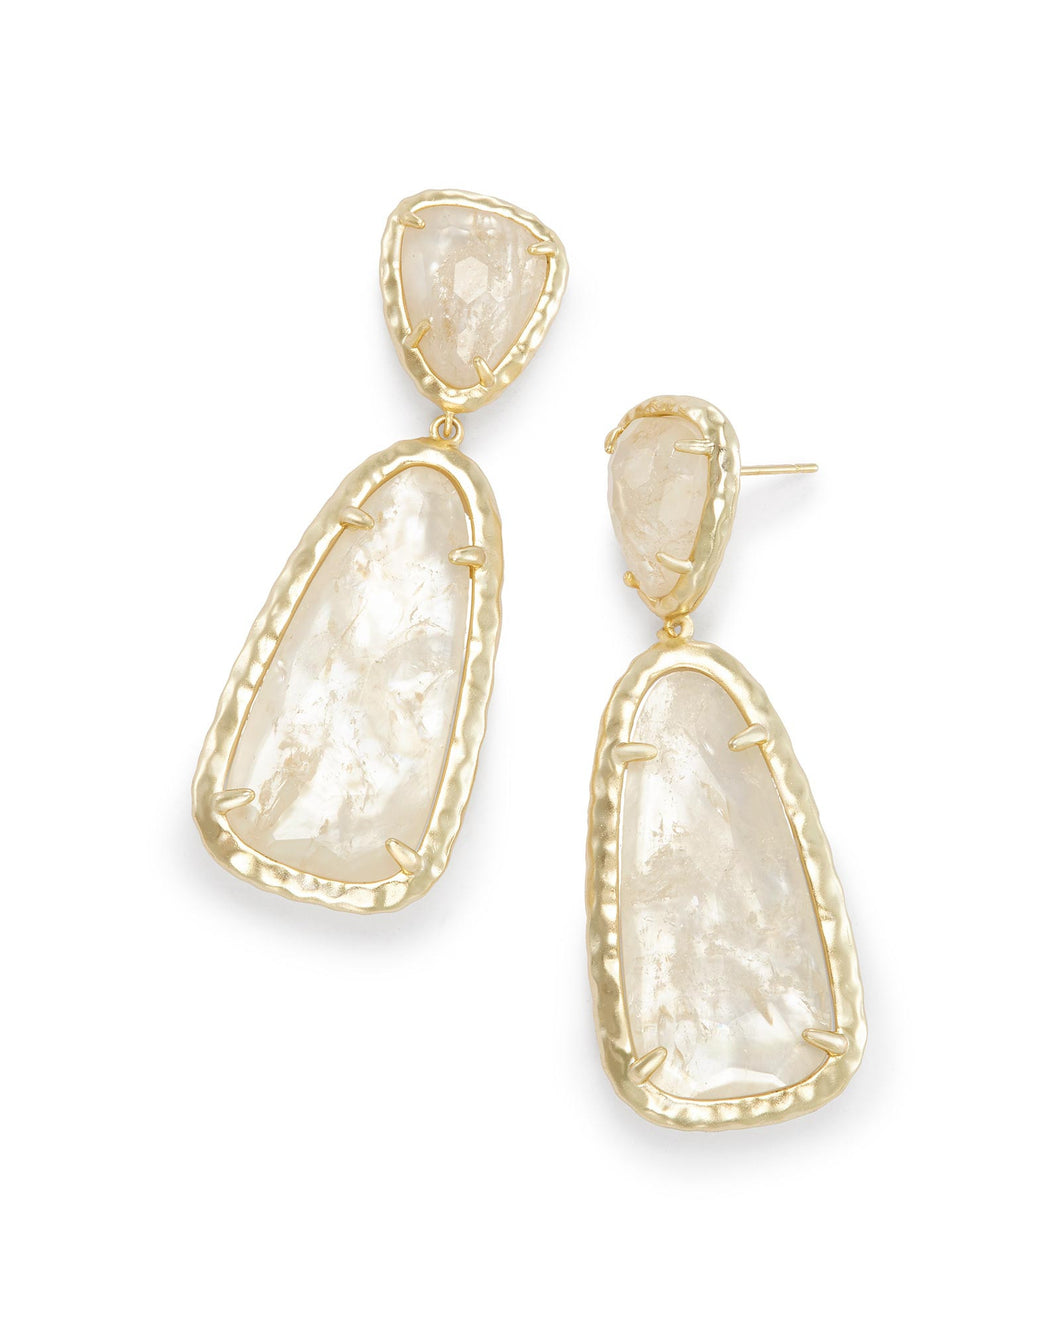 Ivory Crystal Earrings, , Moxie Jewellery, Moxie Jewellery - Moxie Jewellery